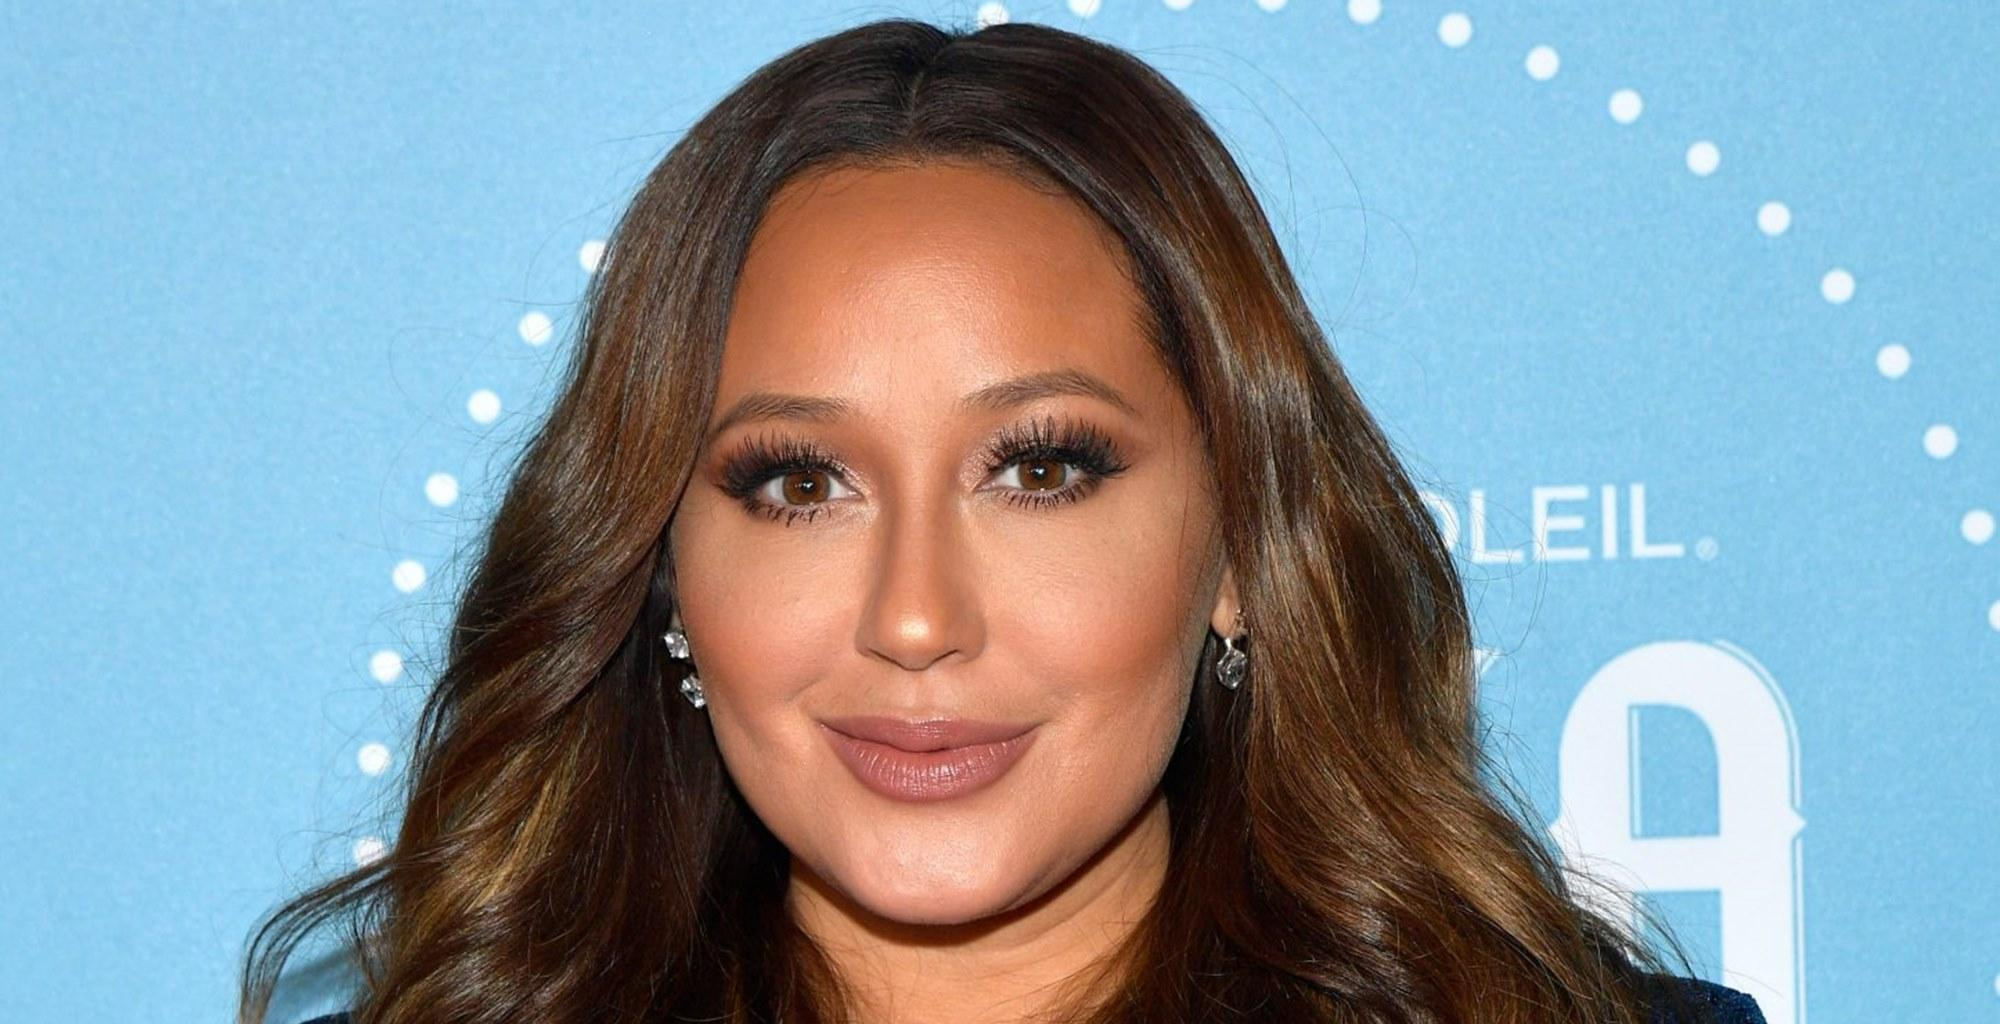 Adrienne Bailon Shares Bathing Suit Photos To Flaunt Dramatic Weight Loss